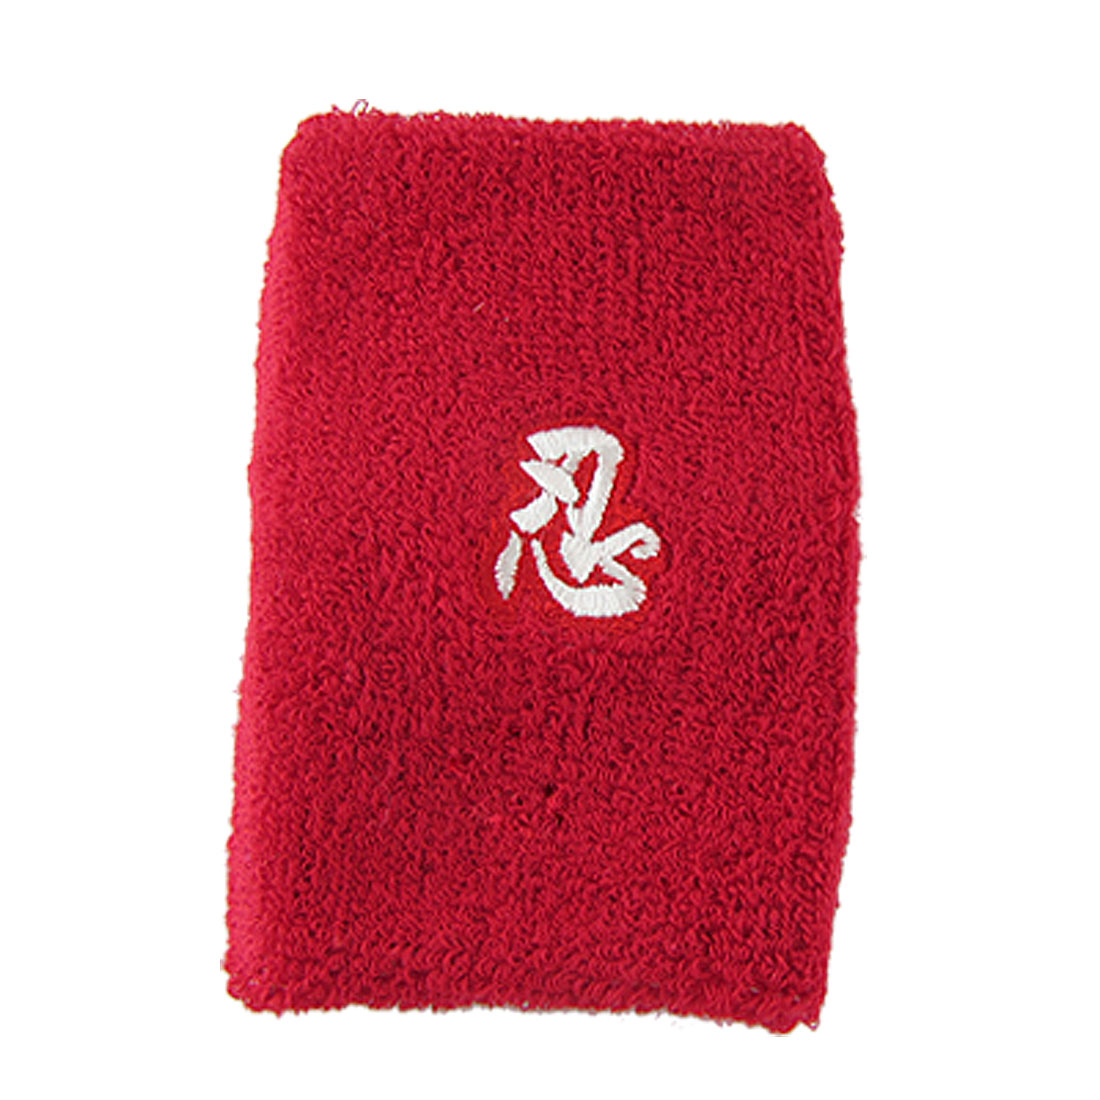 Red Cotton Elastic Sports Tennis Wristband